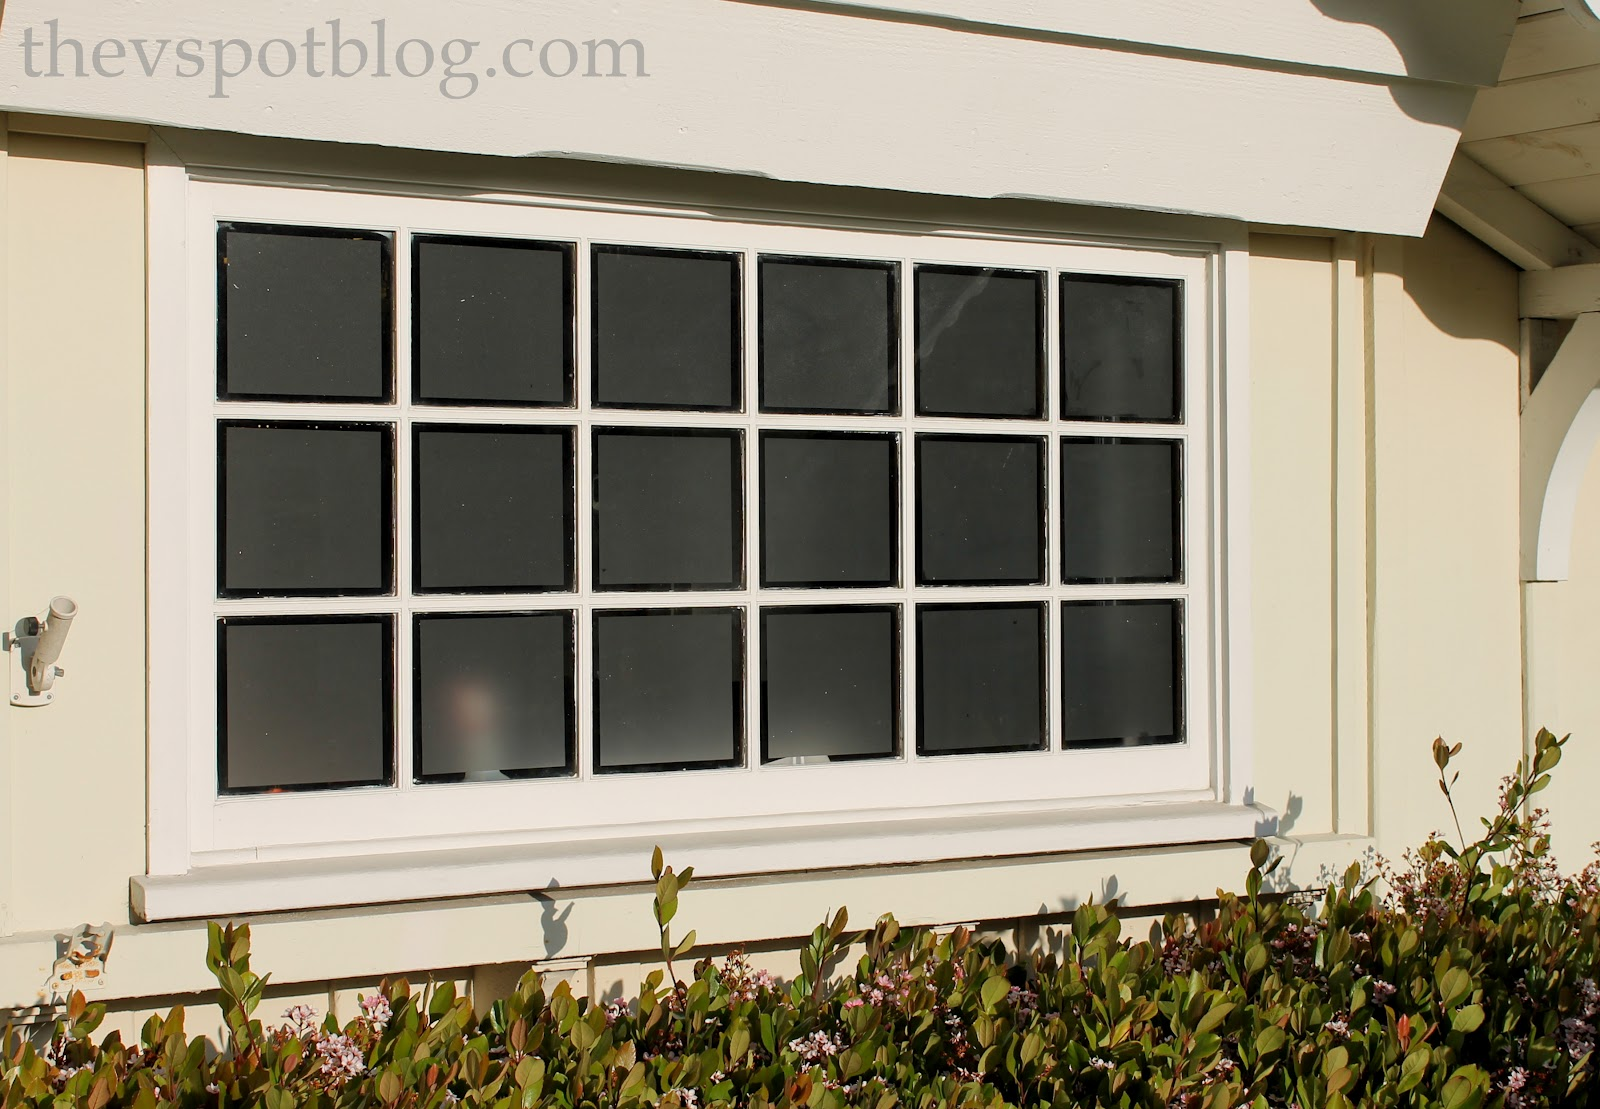 frosted glass window film adds privacy to garage windows decorative window film blog. Black Bedroom Furniture Sets. Home Design Ideas